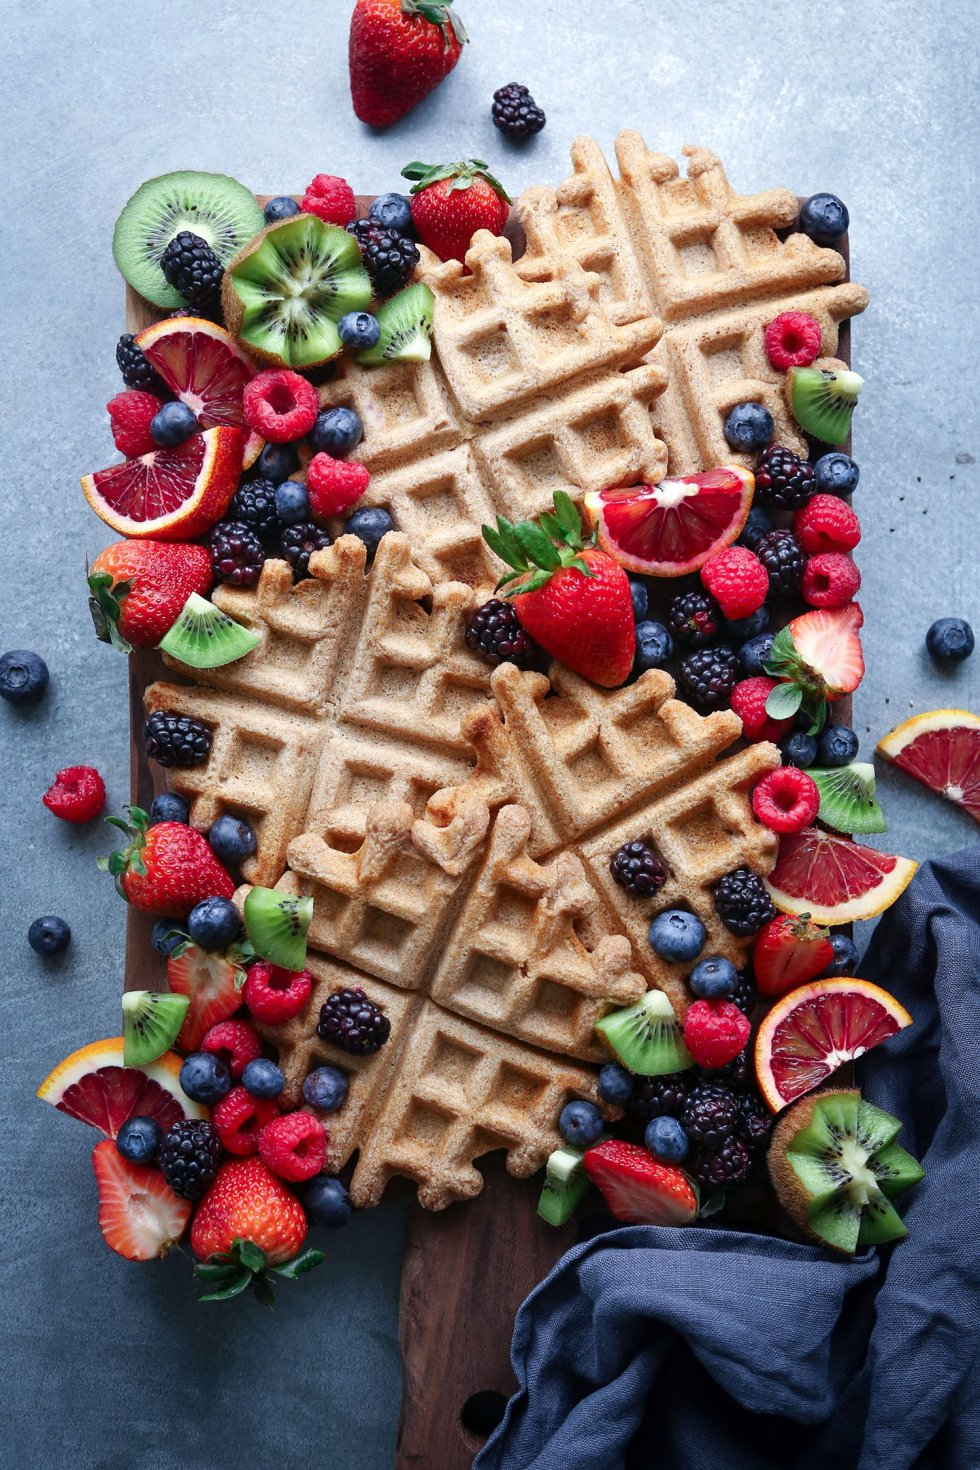 Simple Spelt Waffles | Refined Sugar Free and Vegan Friendly | Wife Mama Foodie